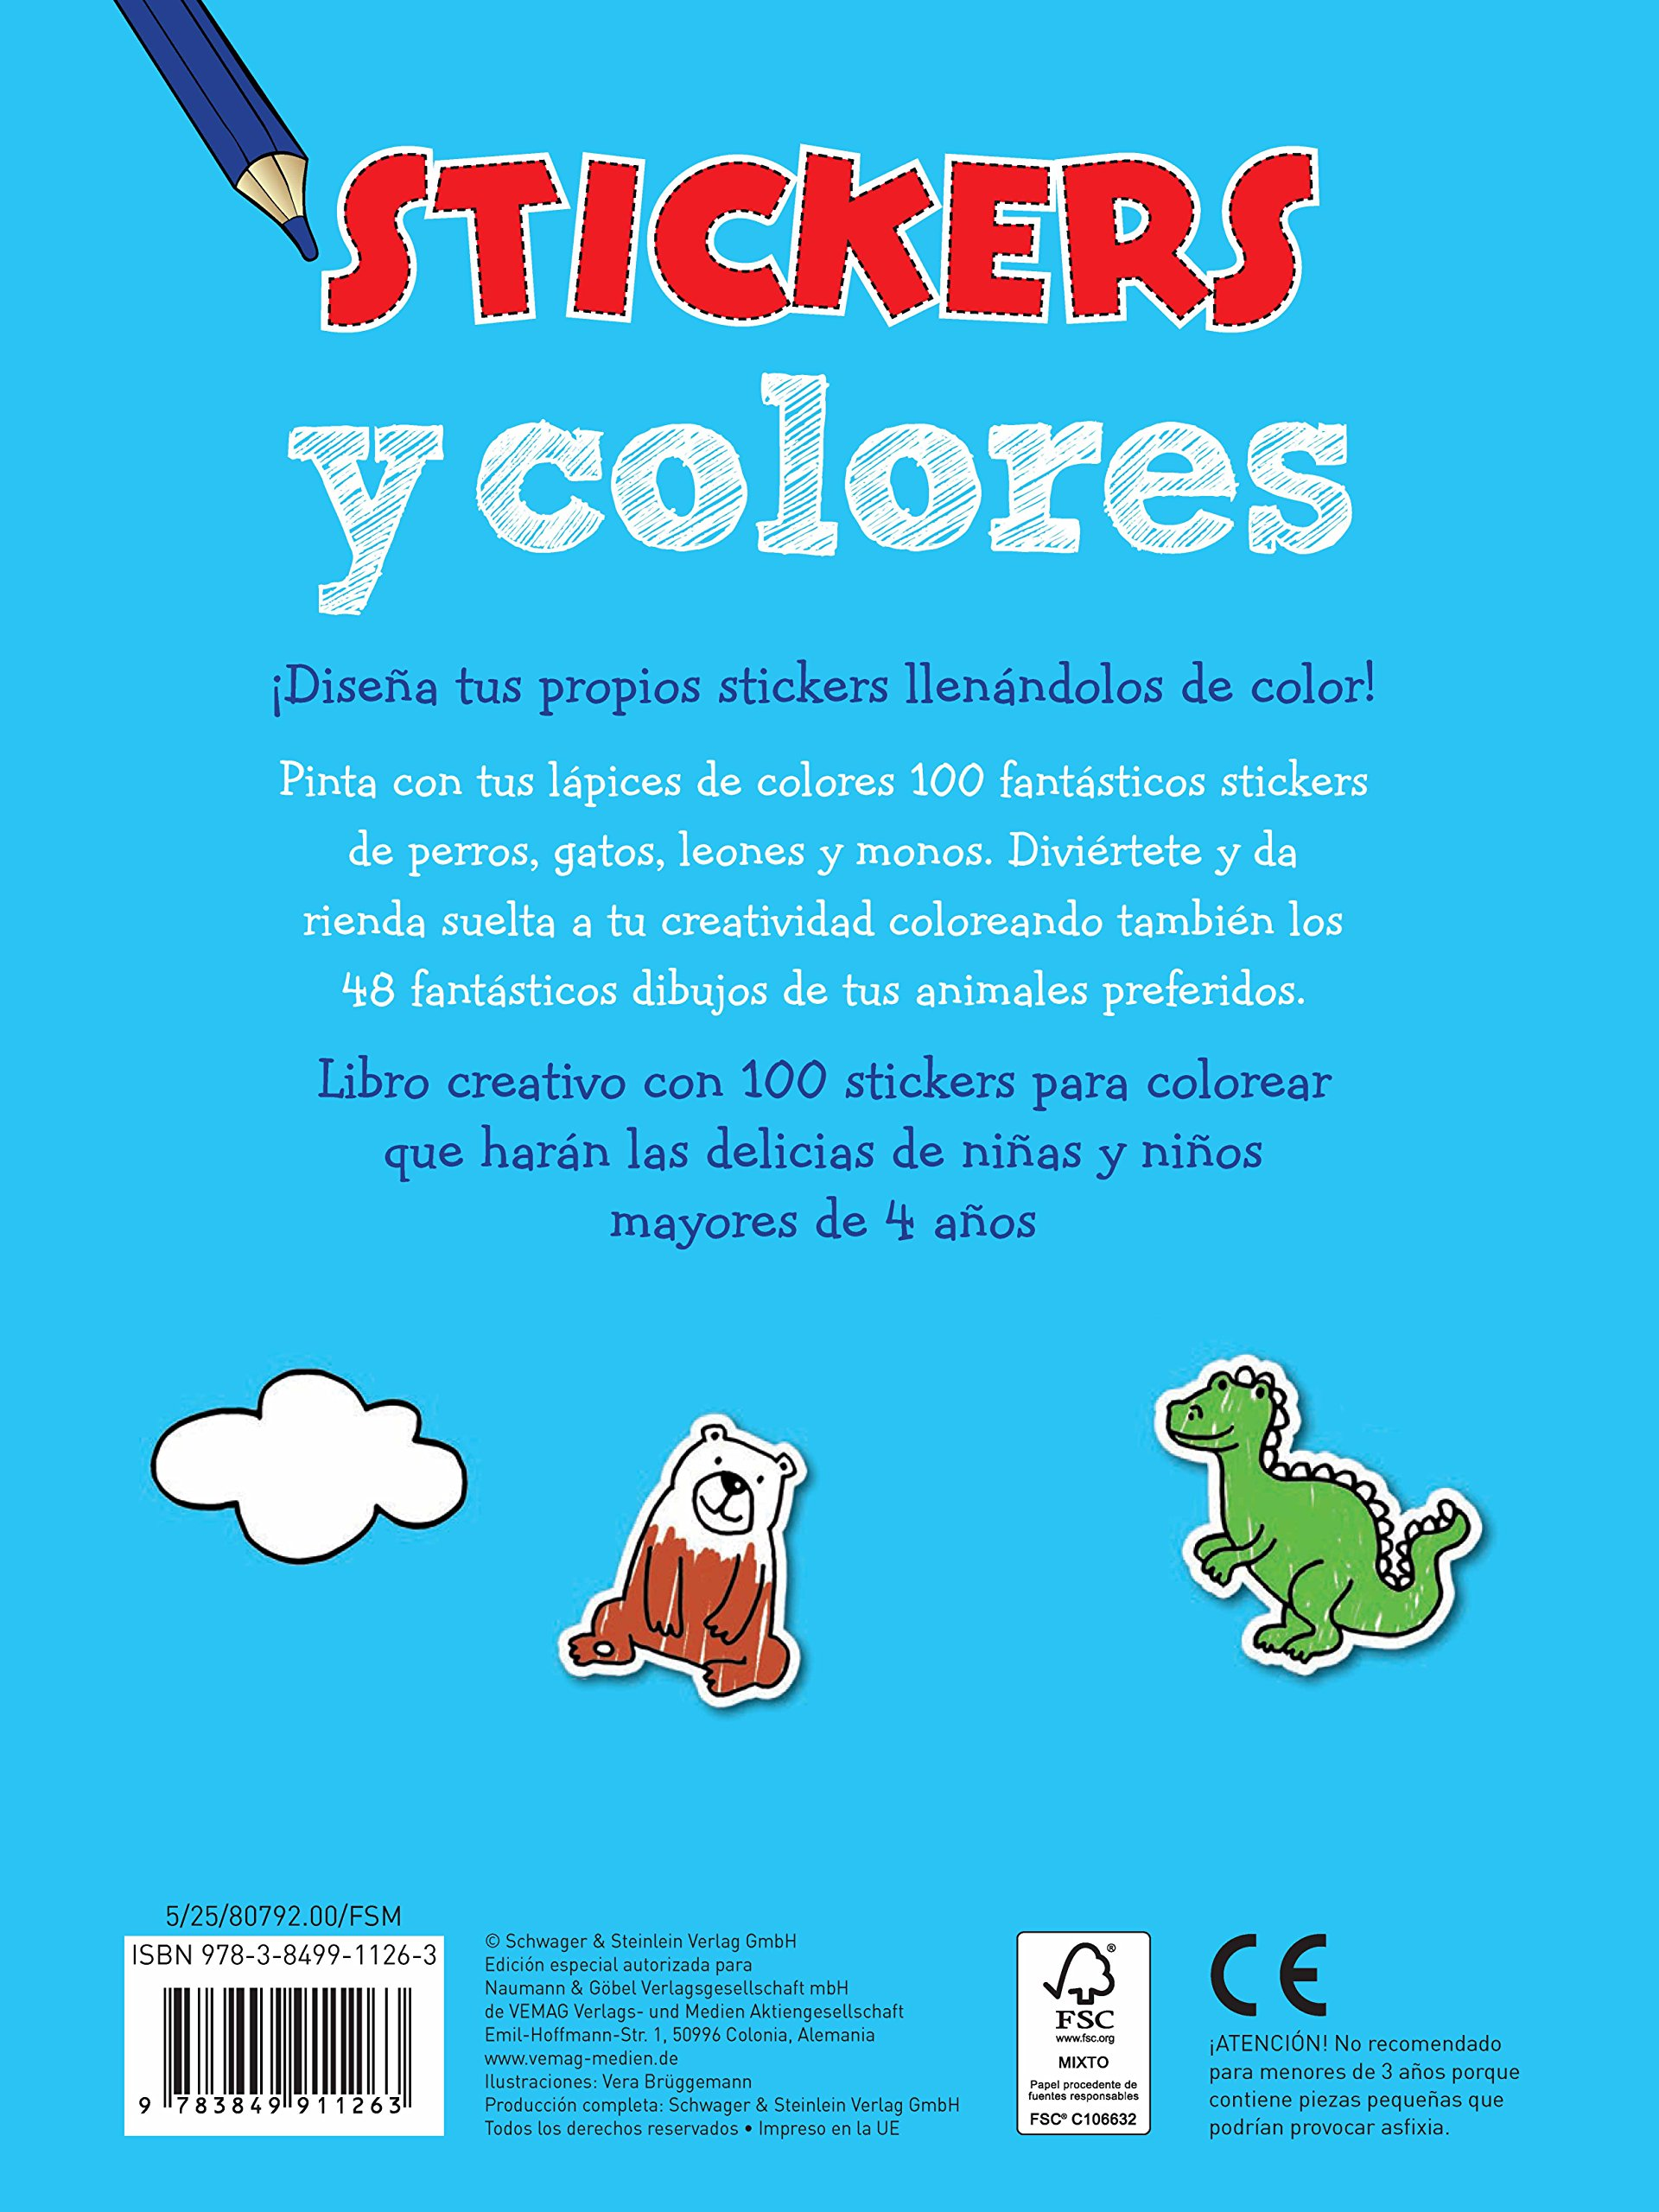 Animales: Con 100 stickers para colorear: 9783849911263: Amazon.com: Books